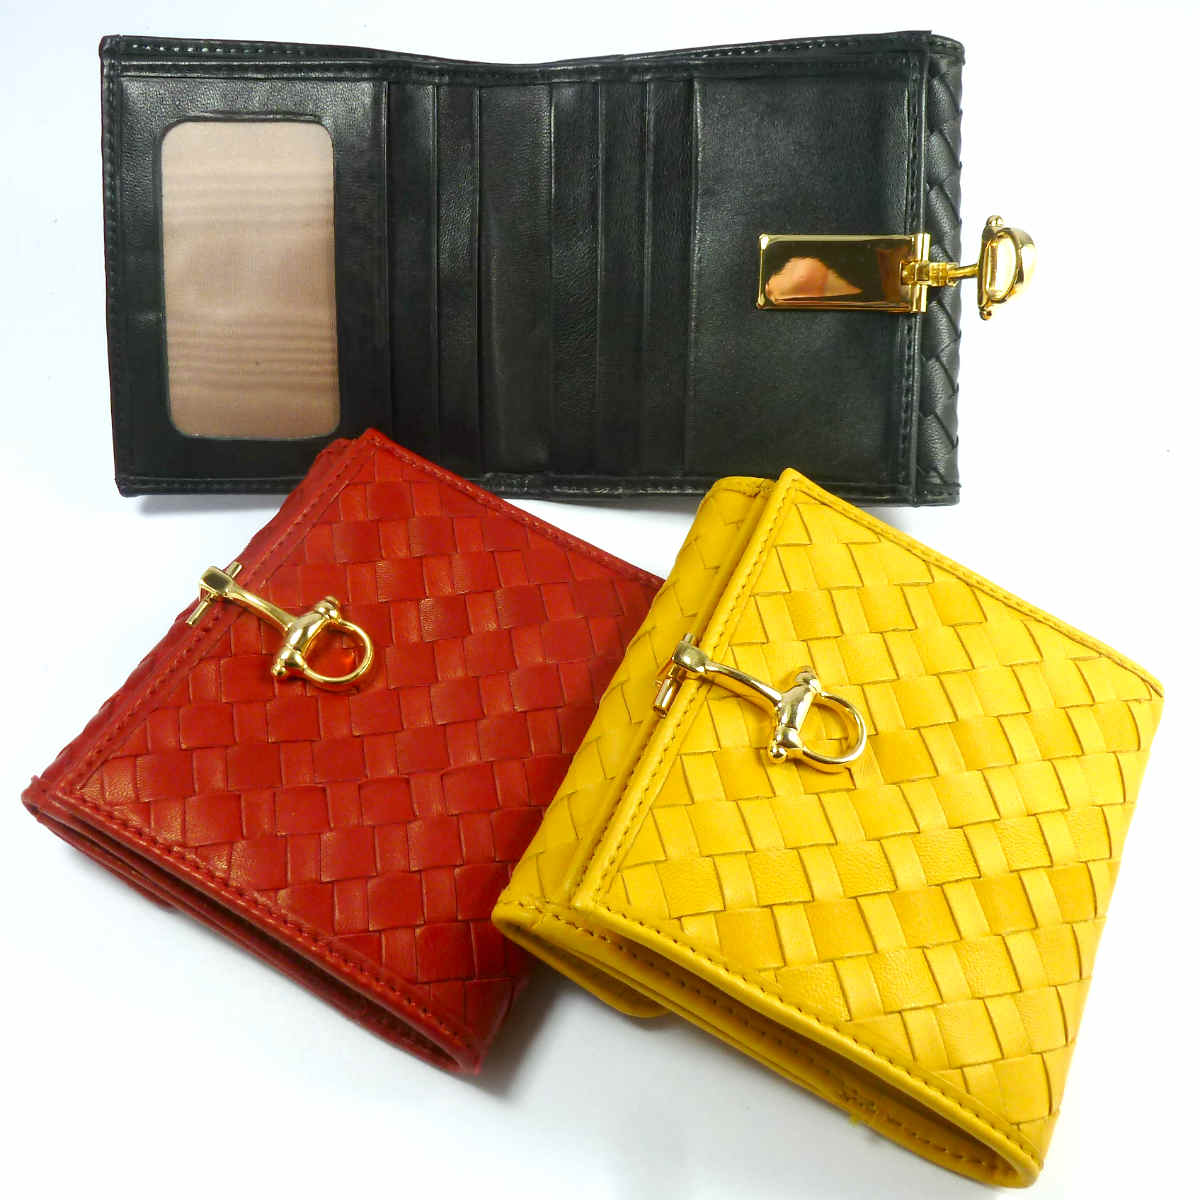 1662 WOVEN WALLET with external coinpurse by Bottega Fiorentina